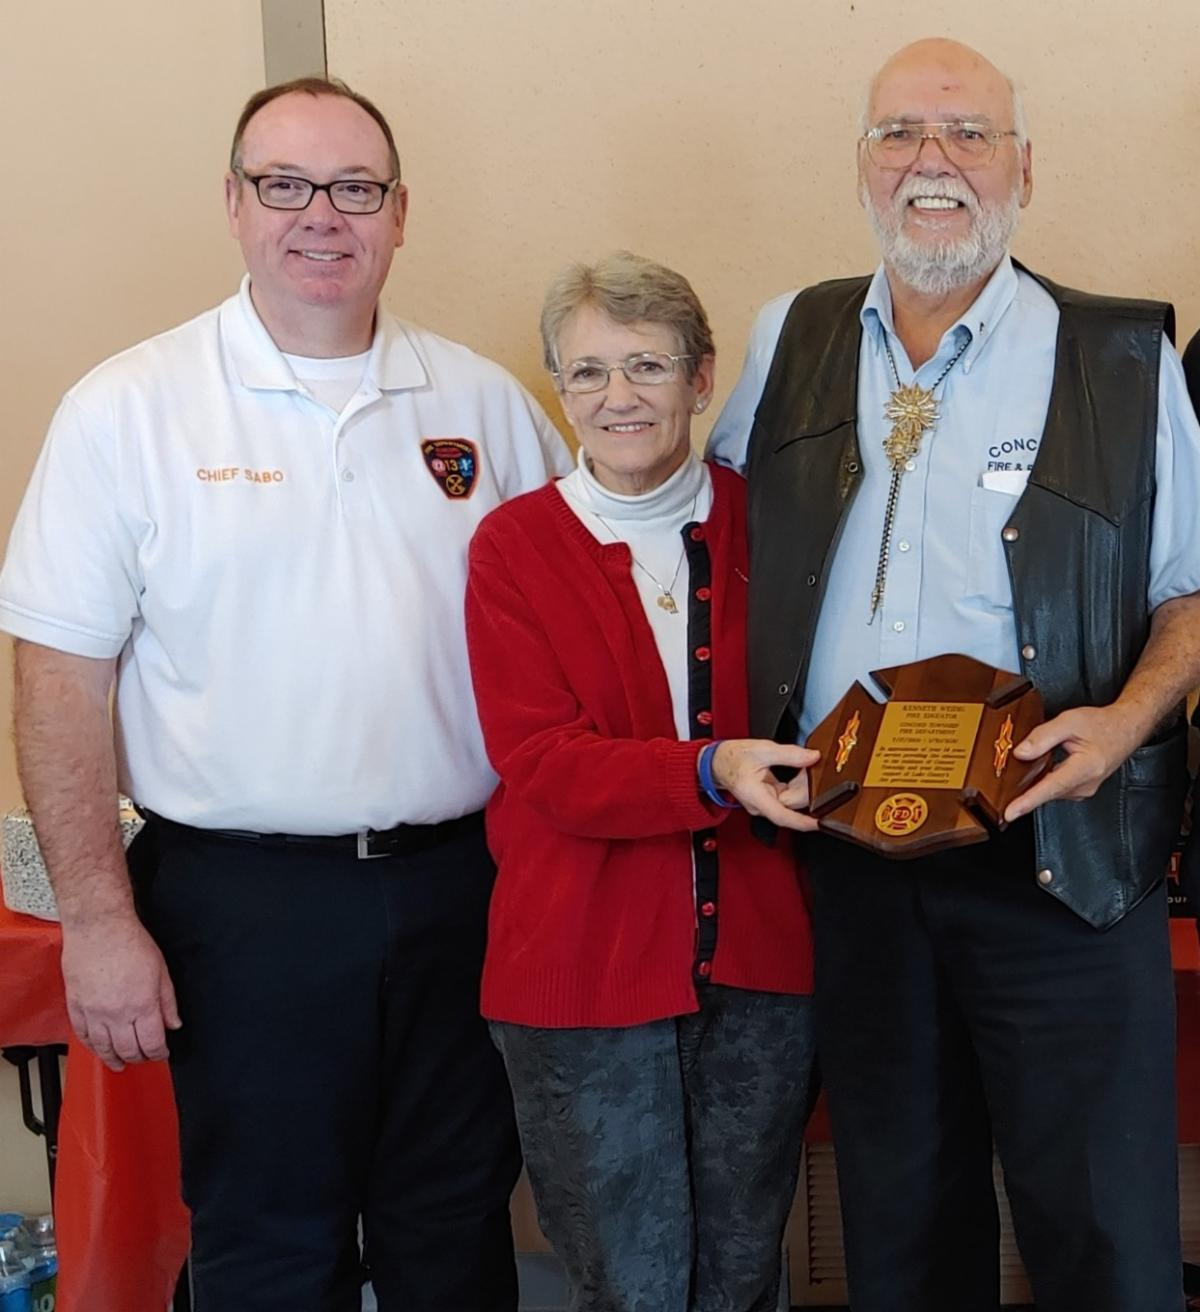 Weidig Retirement Recognition